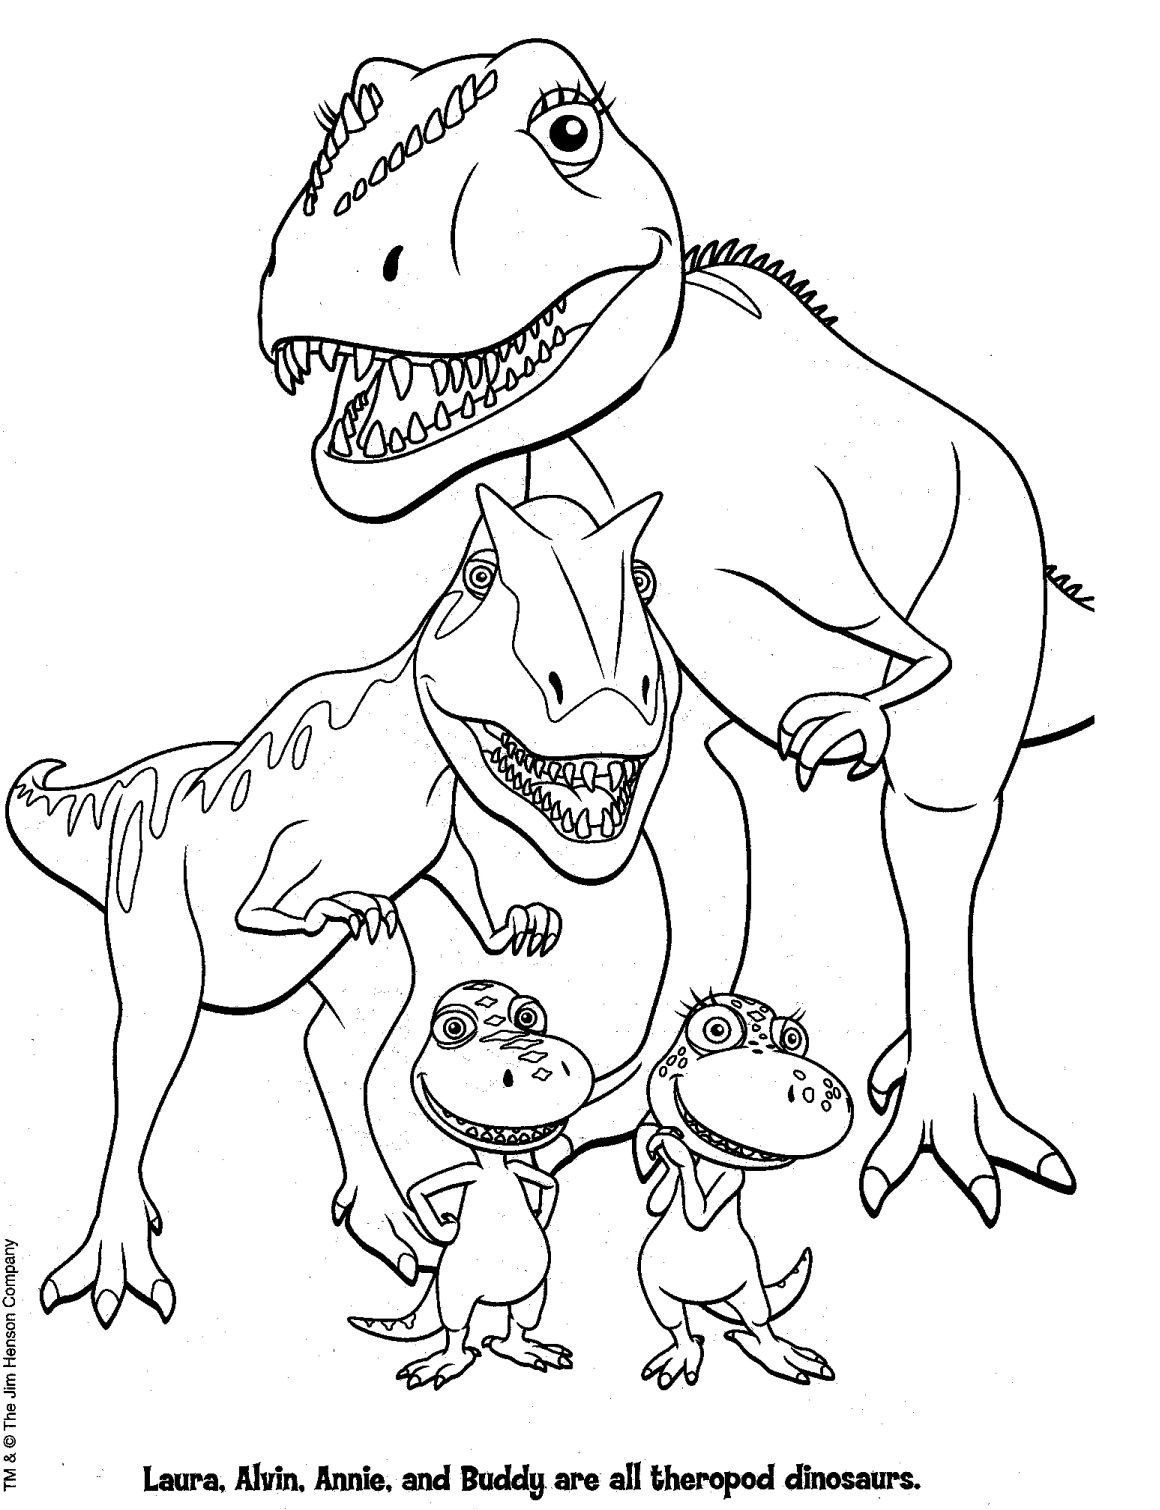 dino coloring pages dino coloring pages dino coloring pages